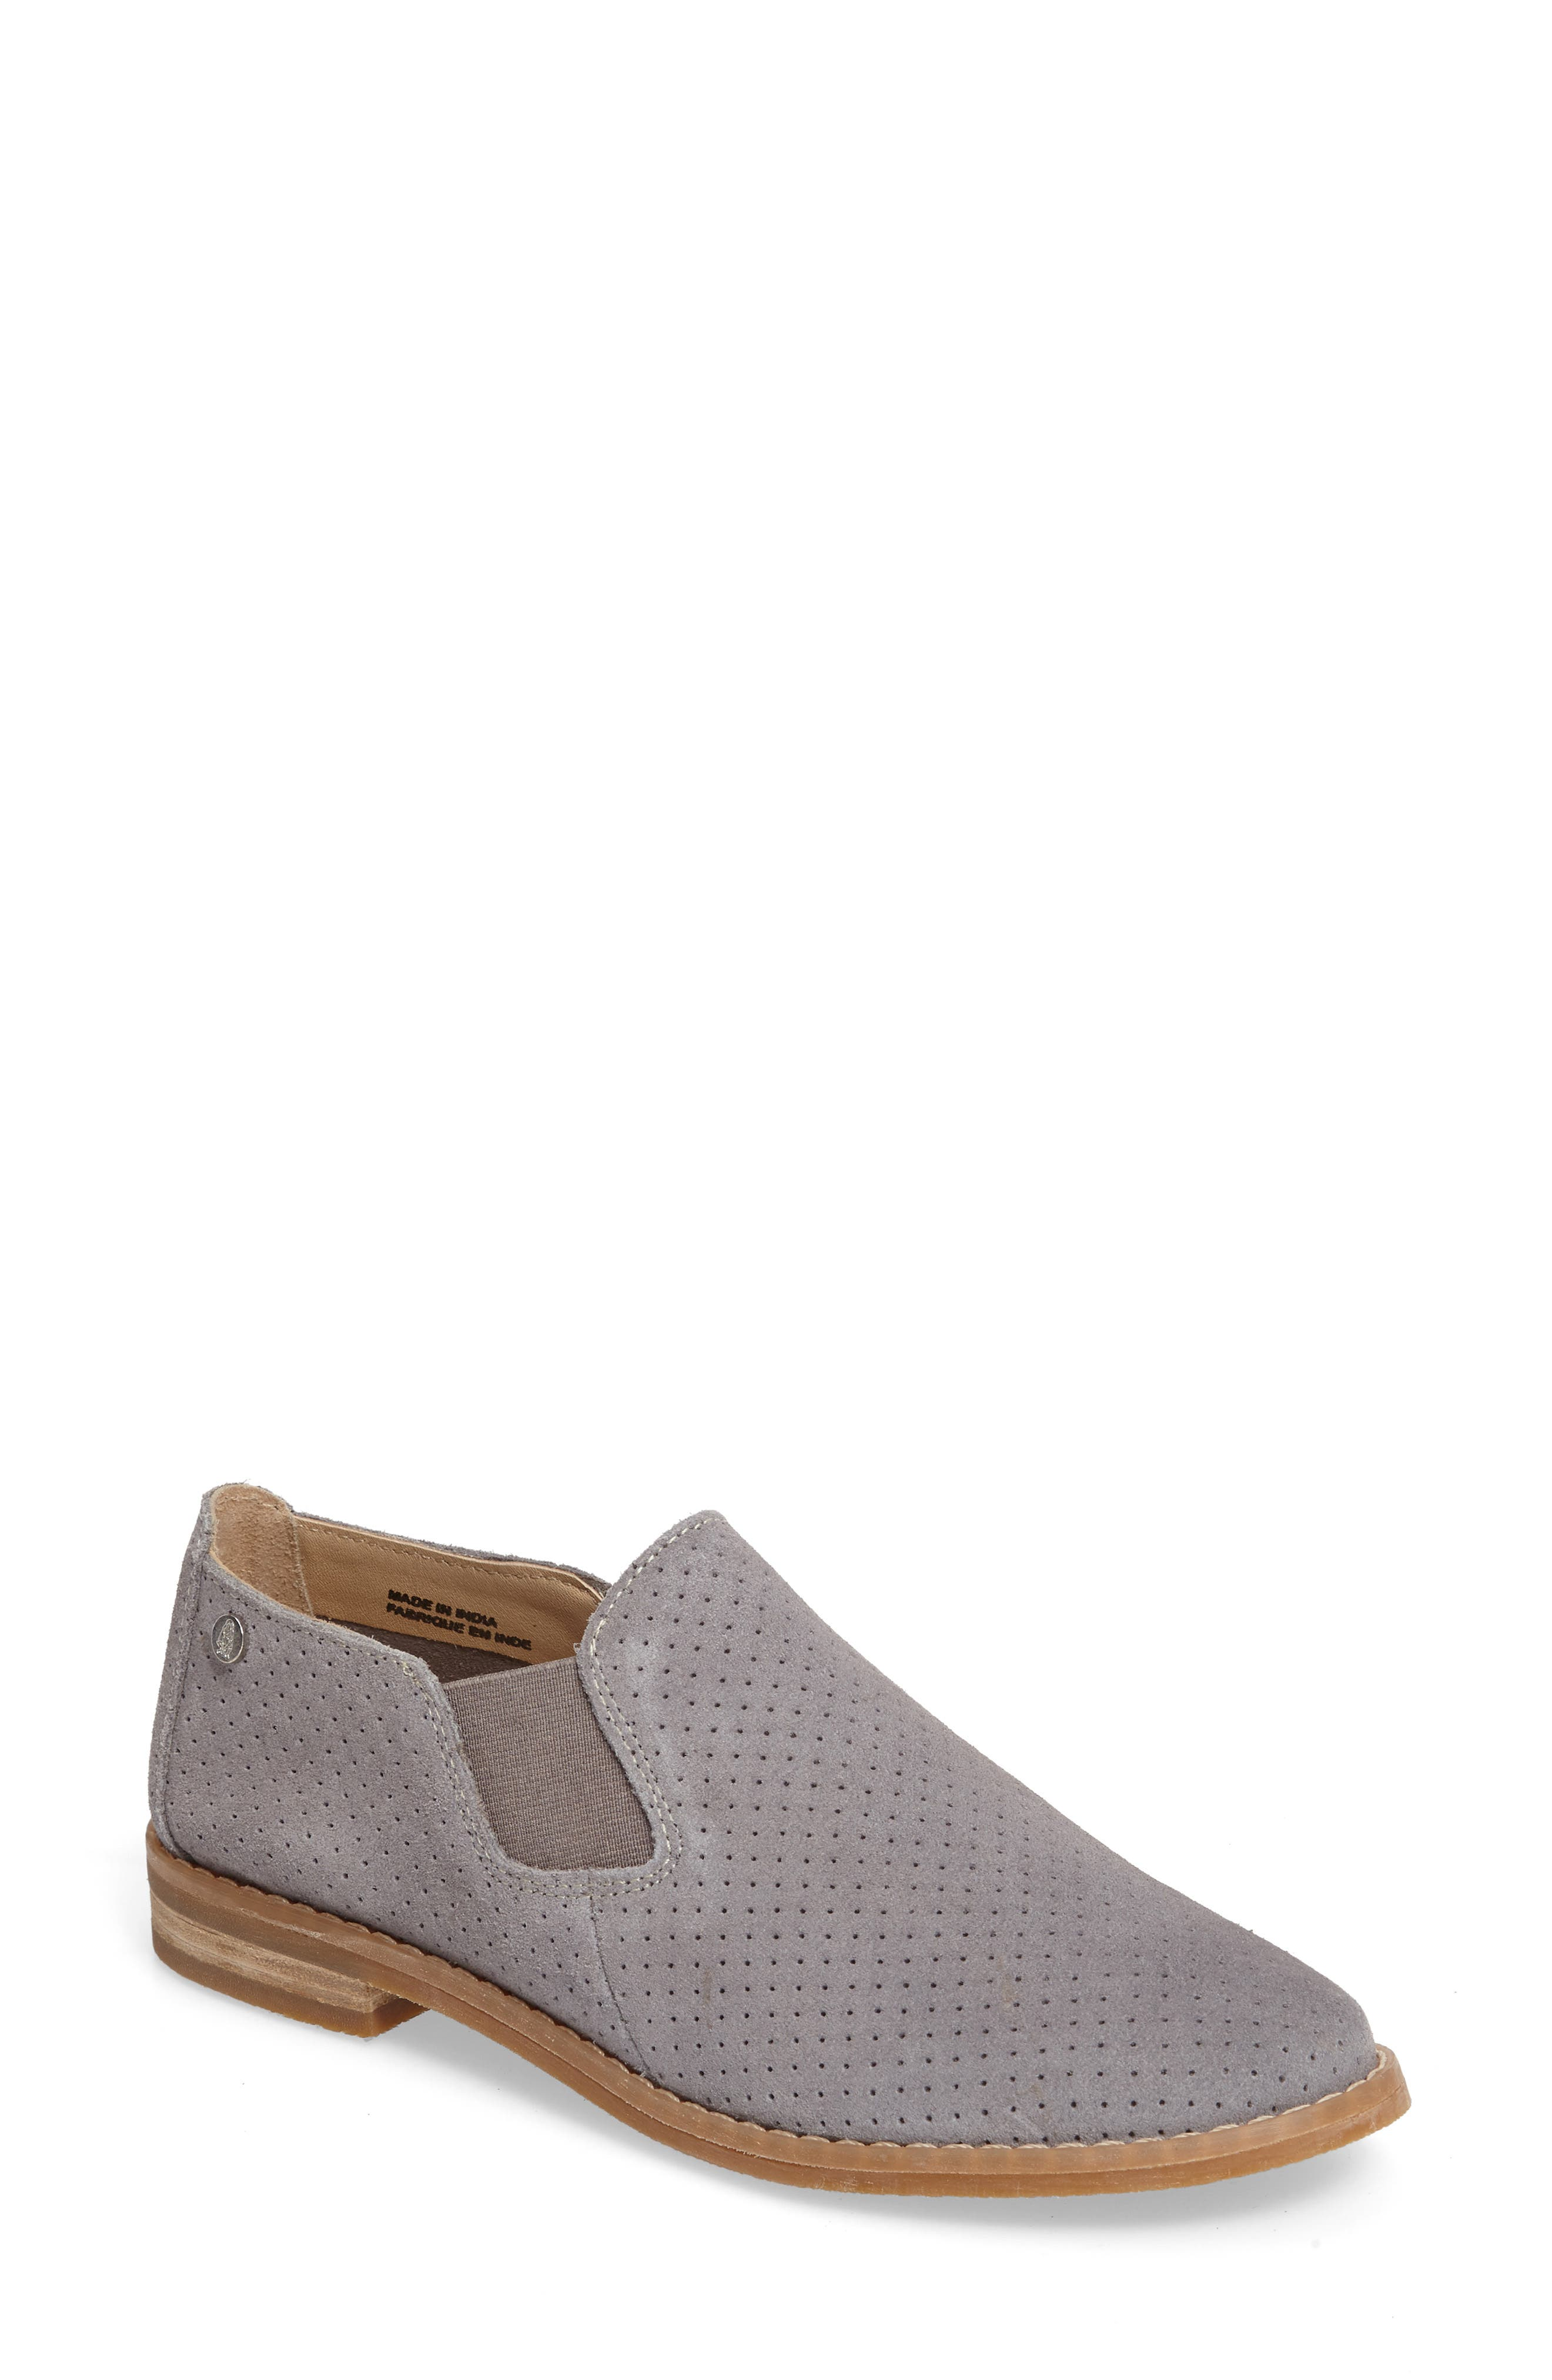 Hush Puppies Analise Clever Slip-On (Women)